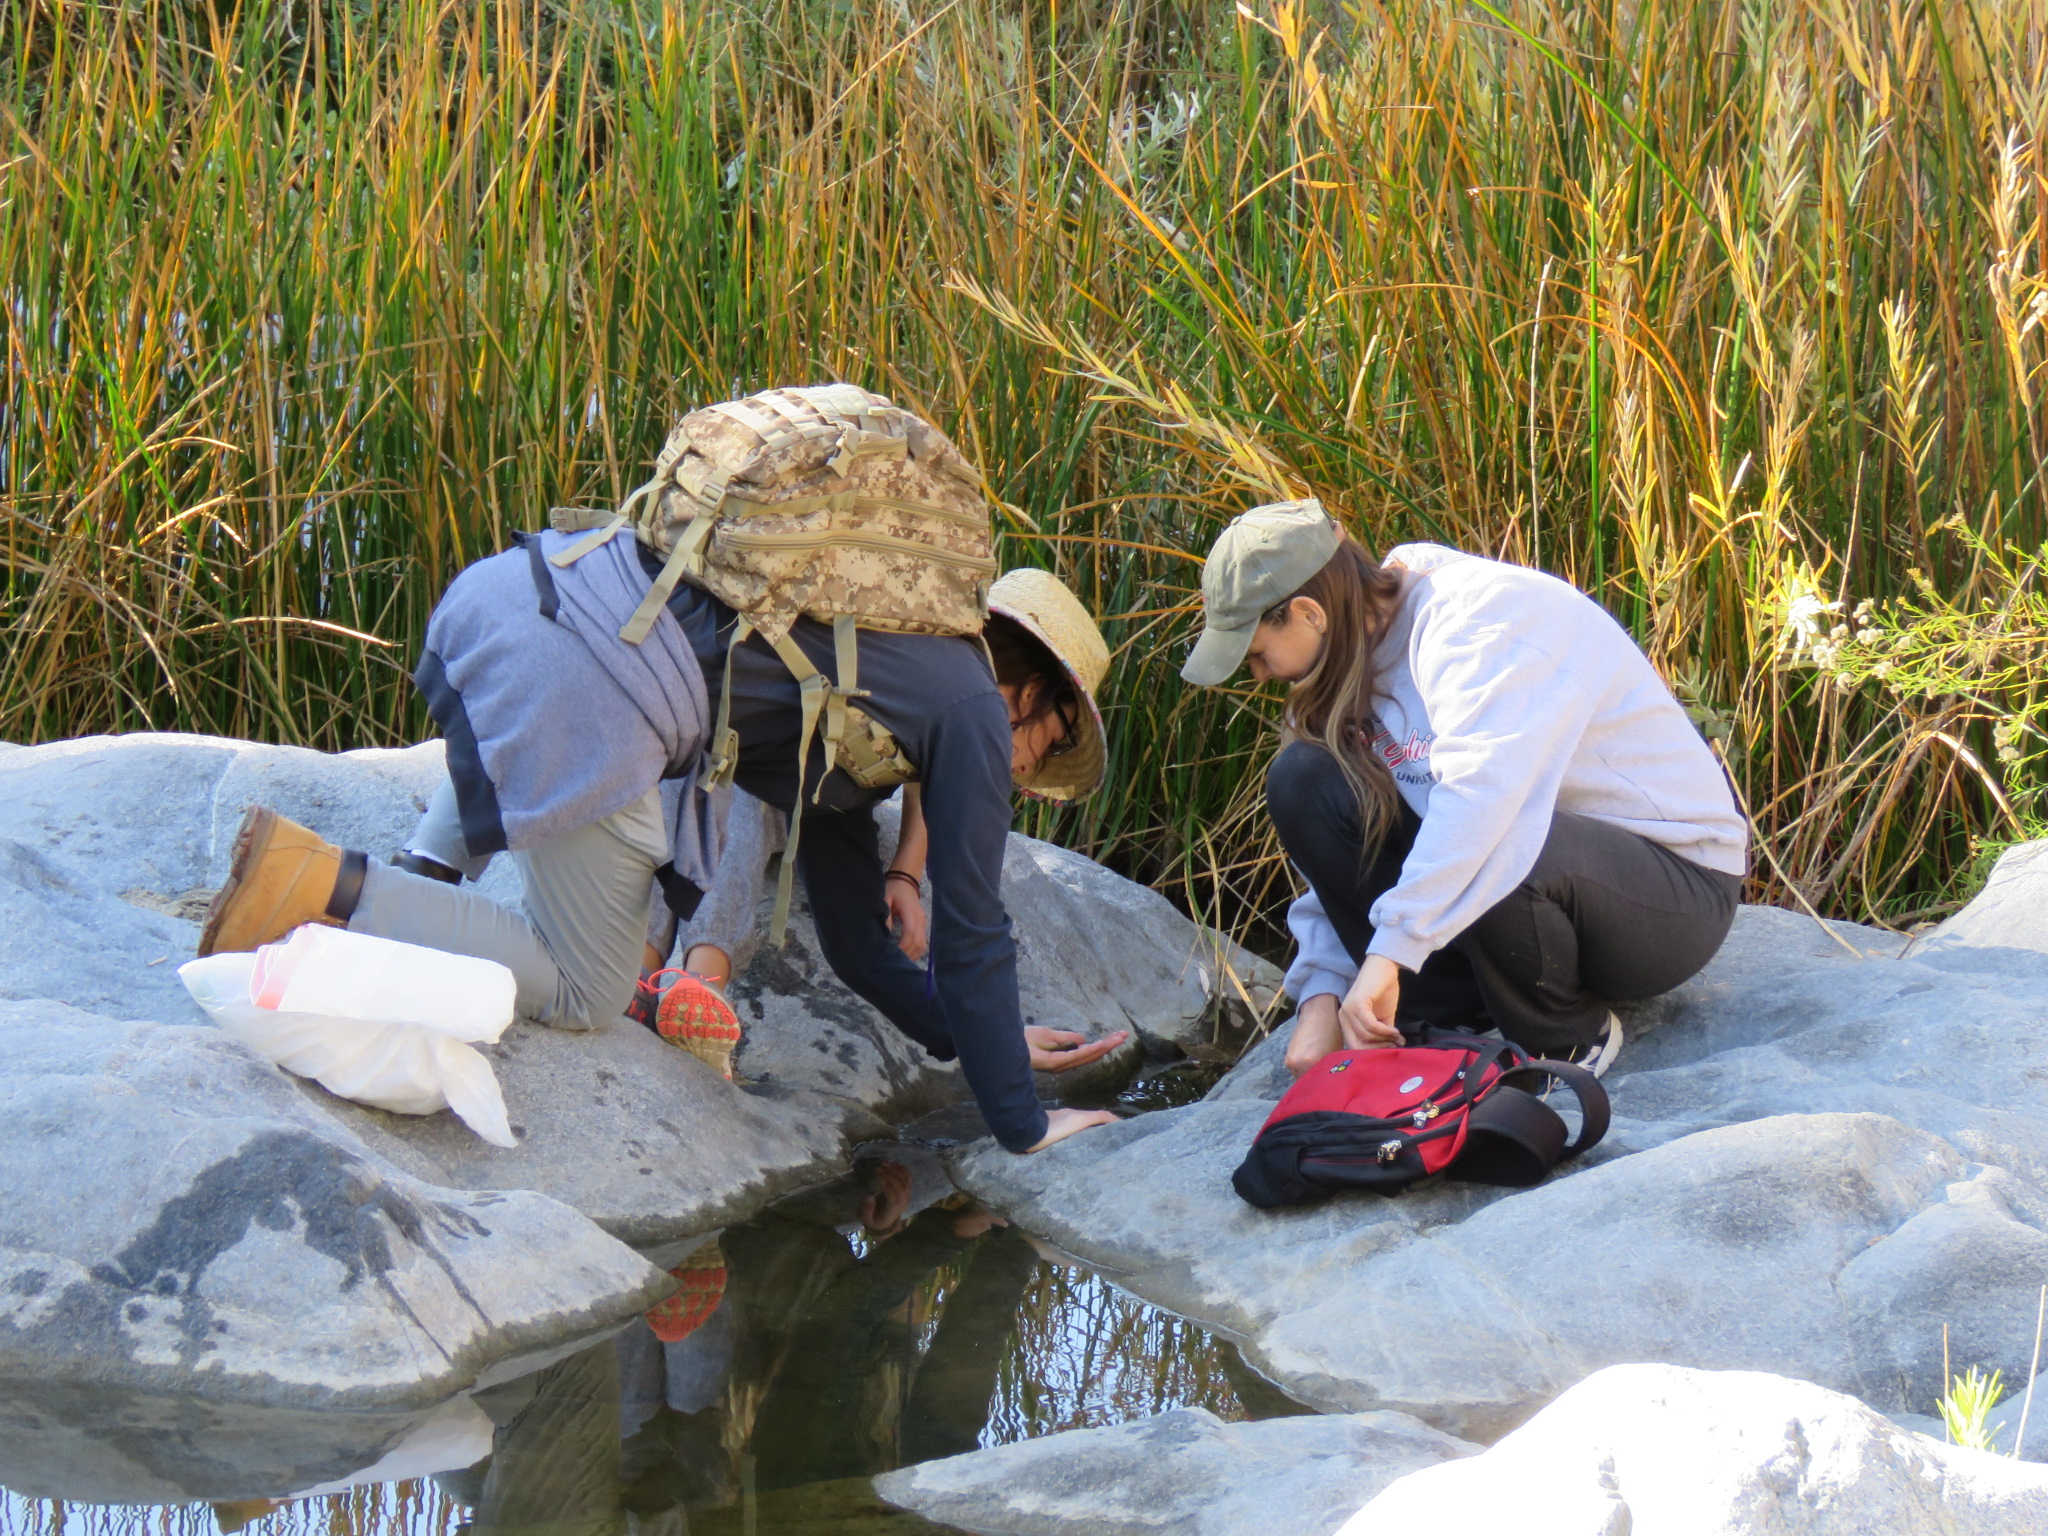 two young people kneeling down to look at water in stream